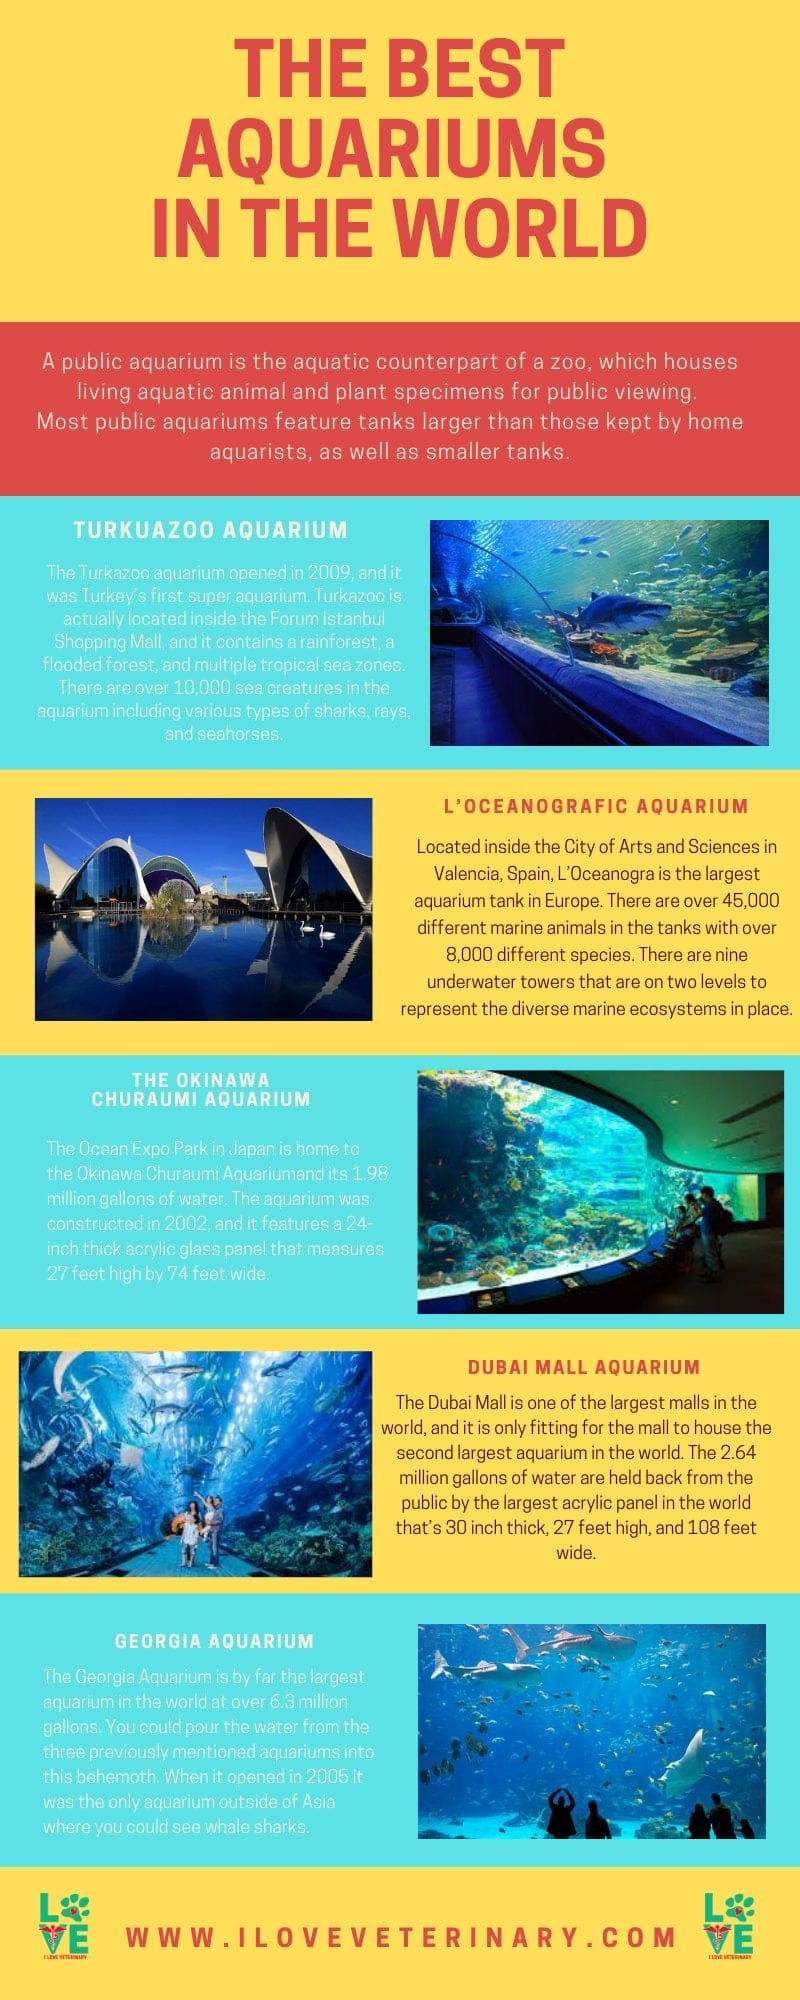 THE BEST AQUARIUMS IN THE WORLD